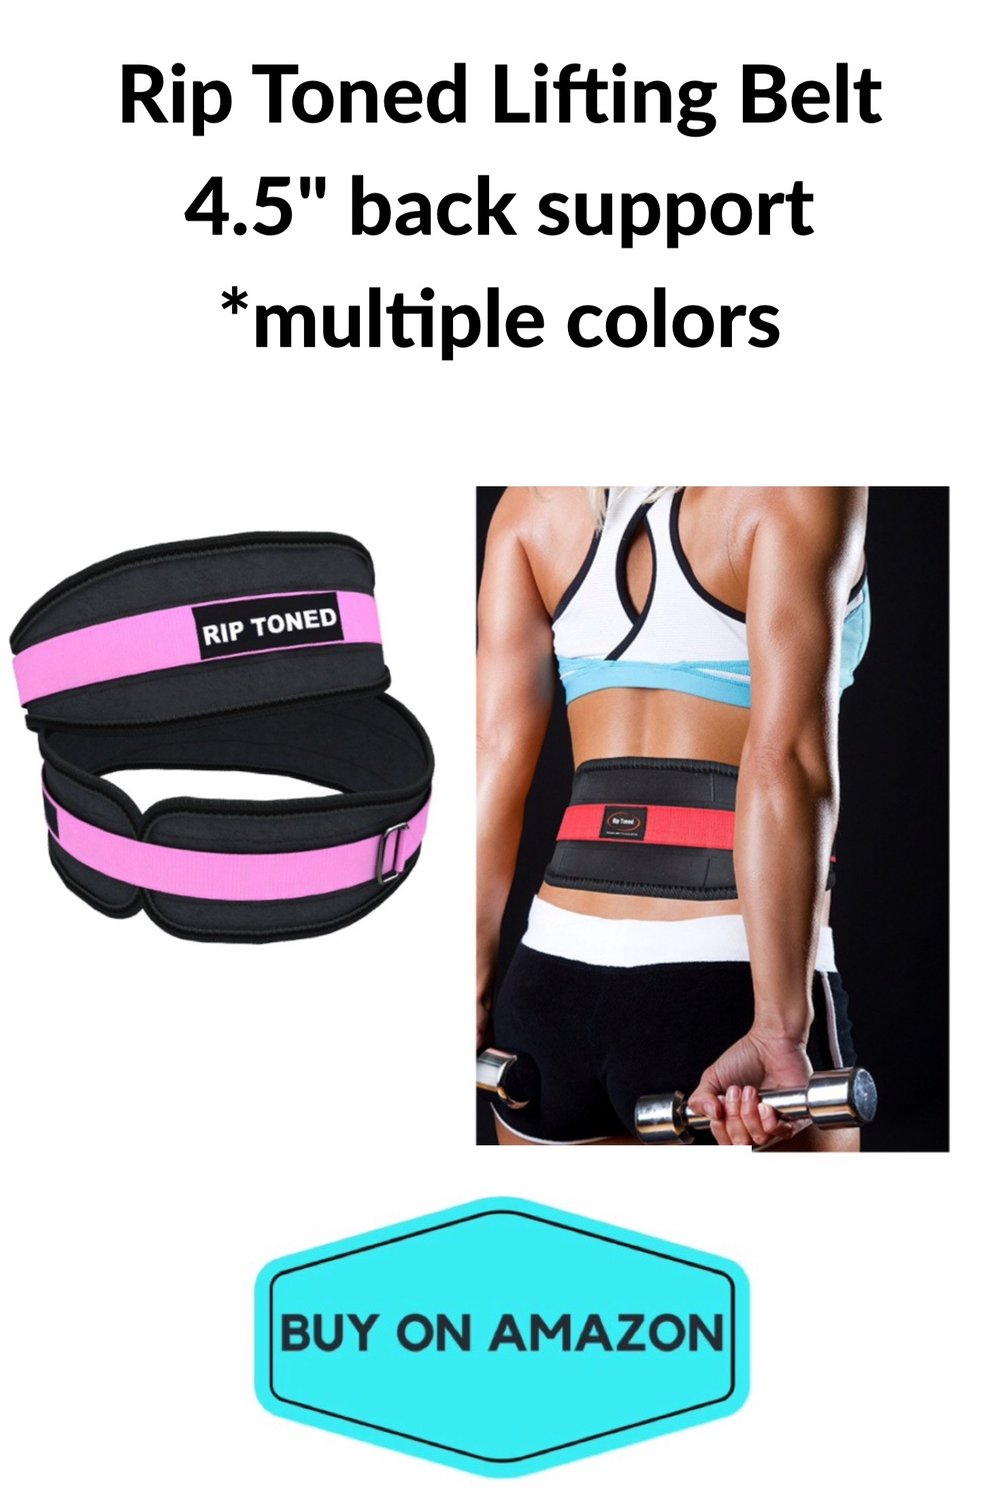 "Rip Toned Lifting Belt, 4.5"" Back Support"